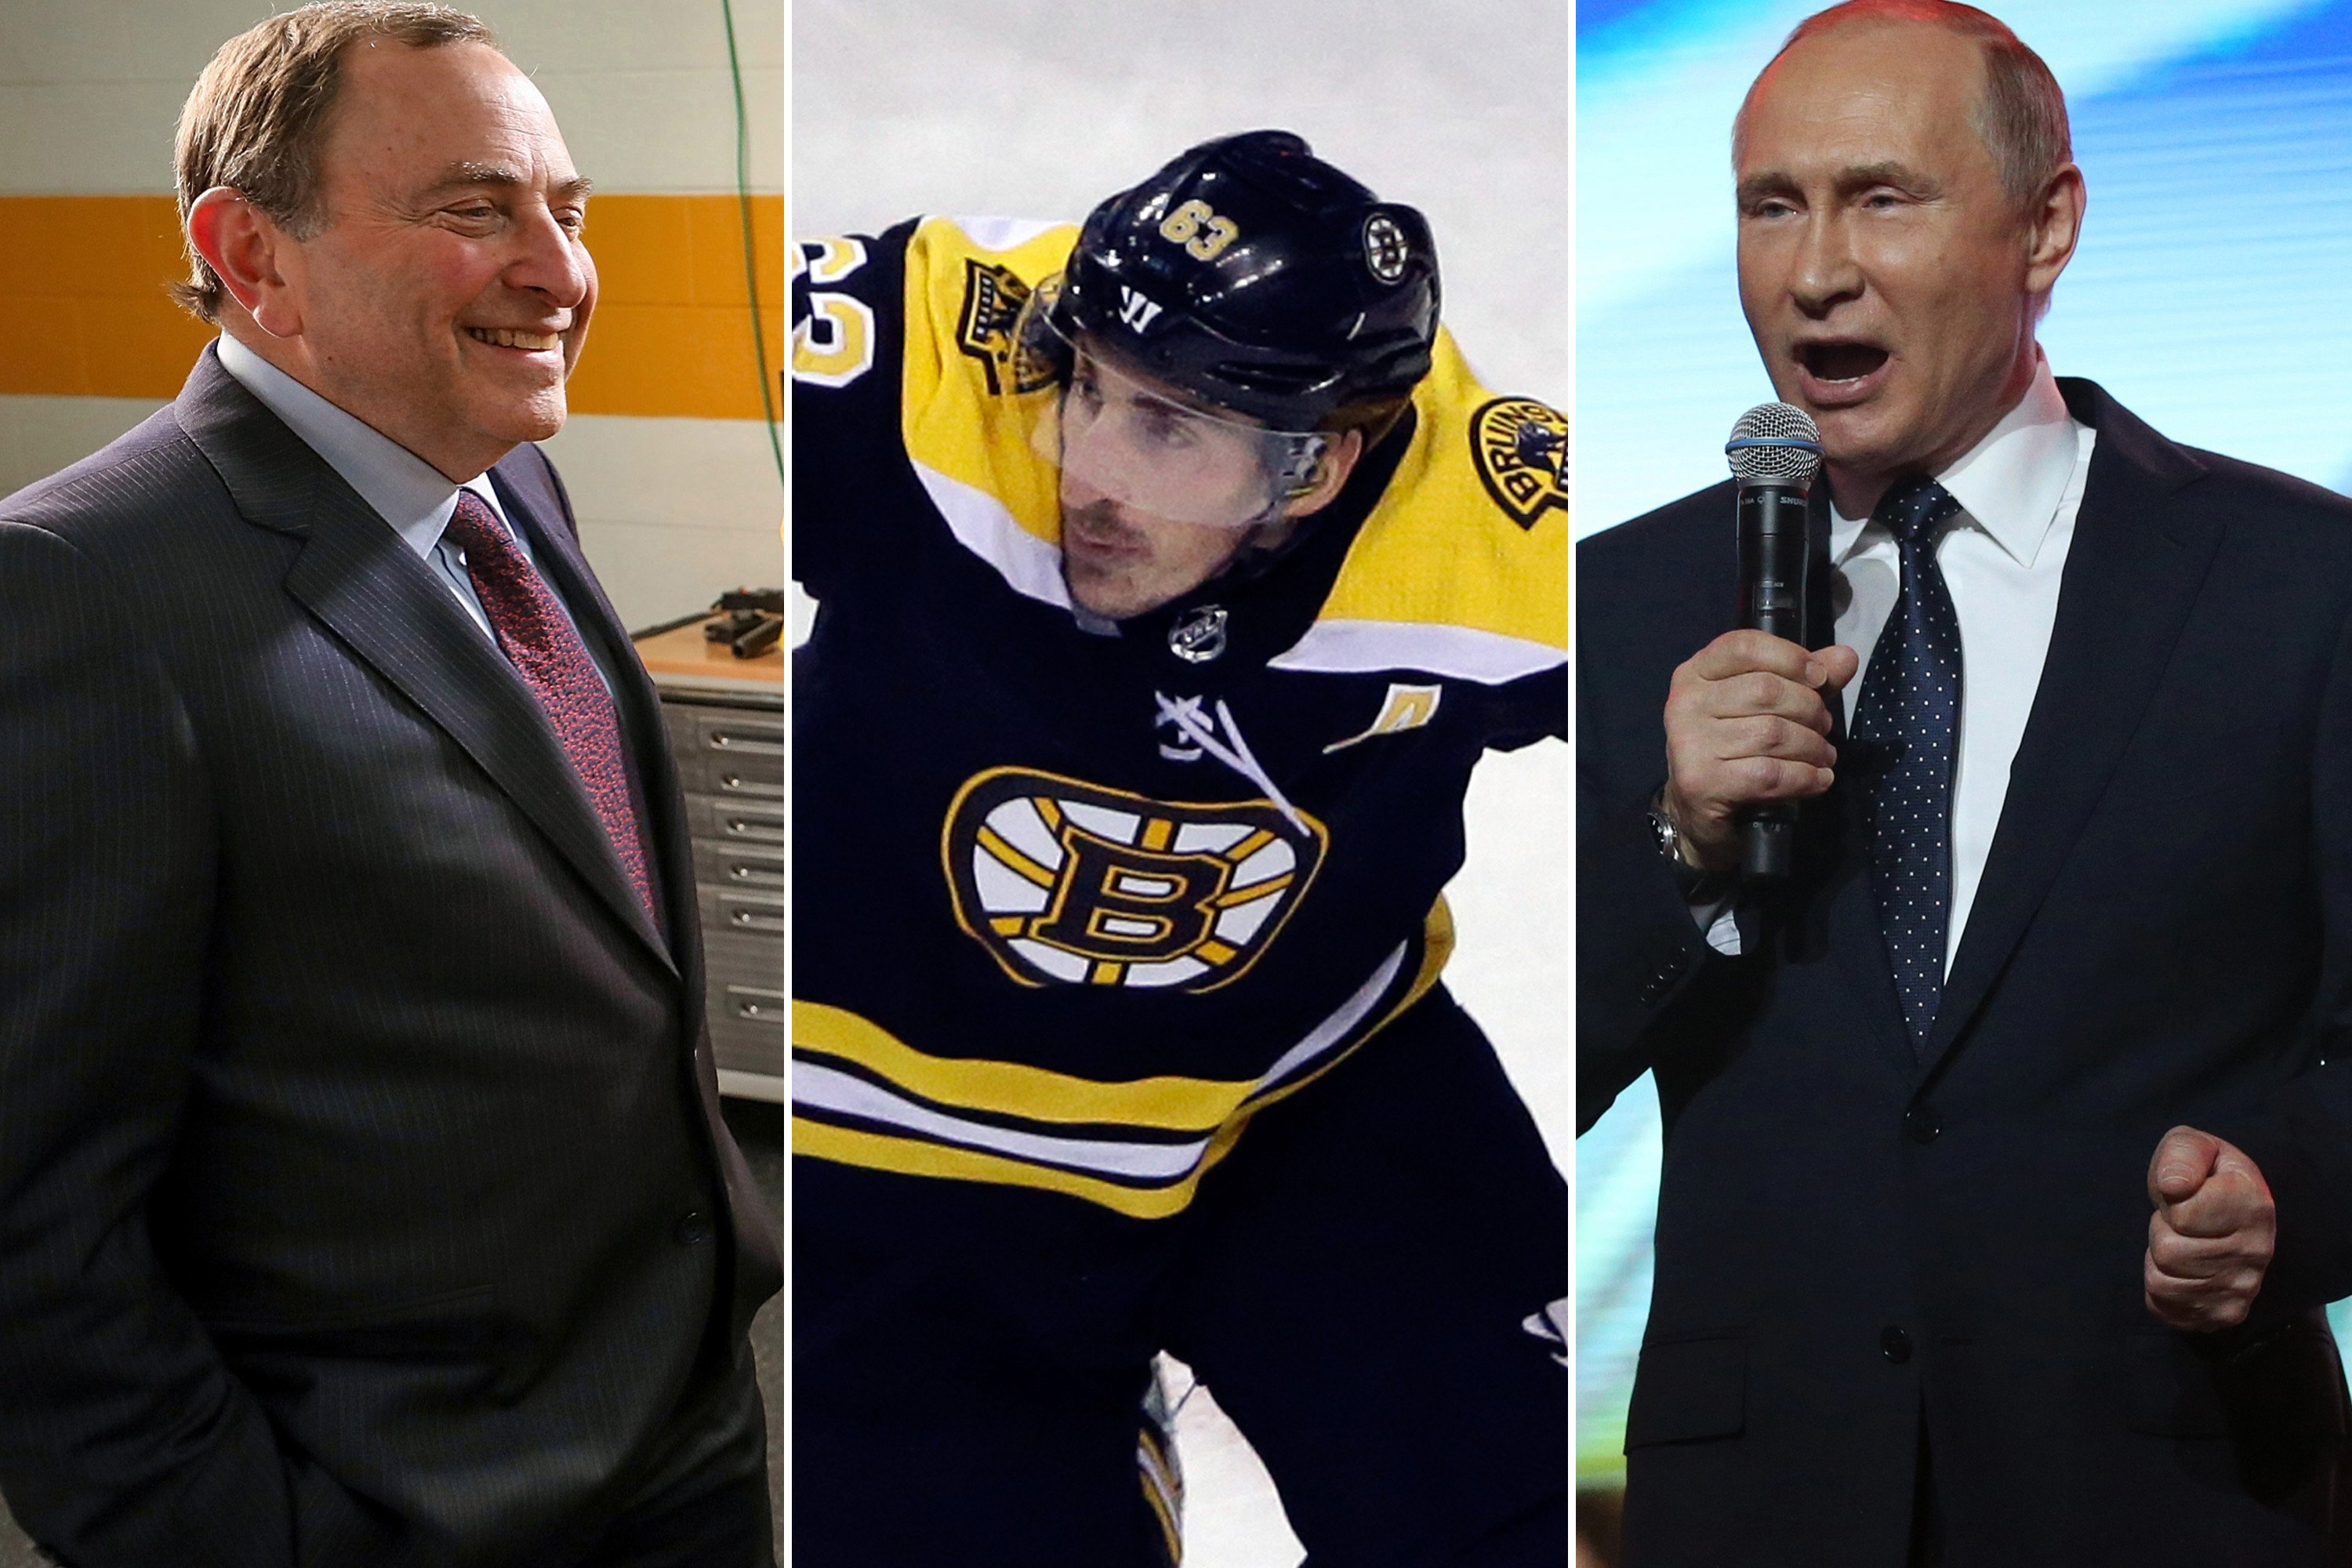 Visions from the NHL's future as a Vladimir Putin rival